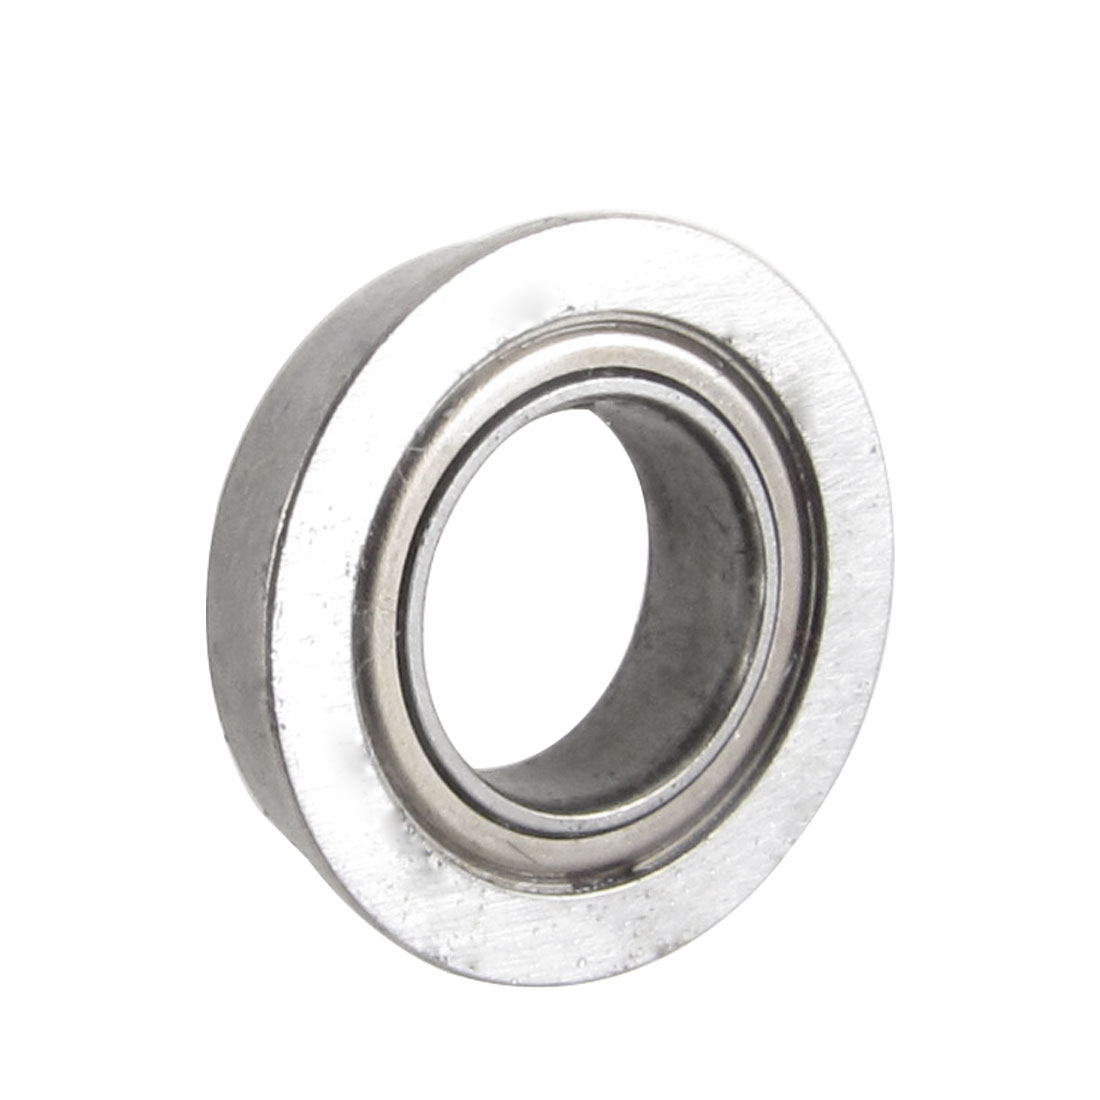 14mm x 8mm x 4mm Silver Tone Sealed Premium Flanged Ball Bearing